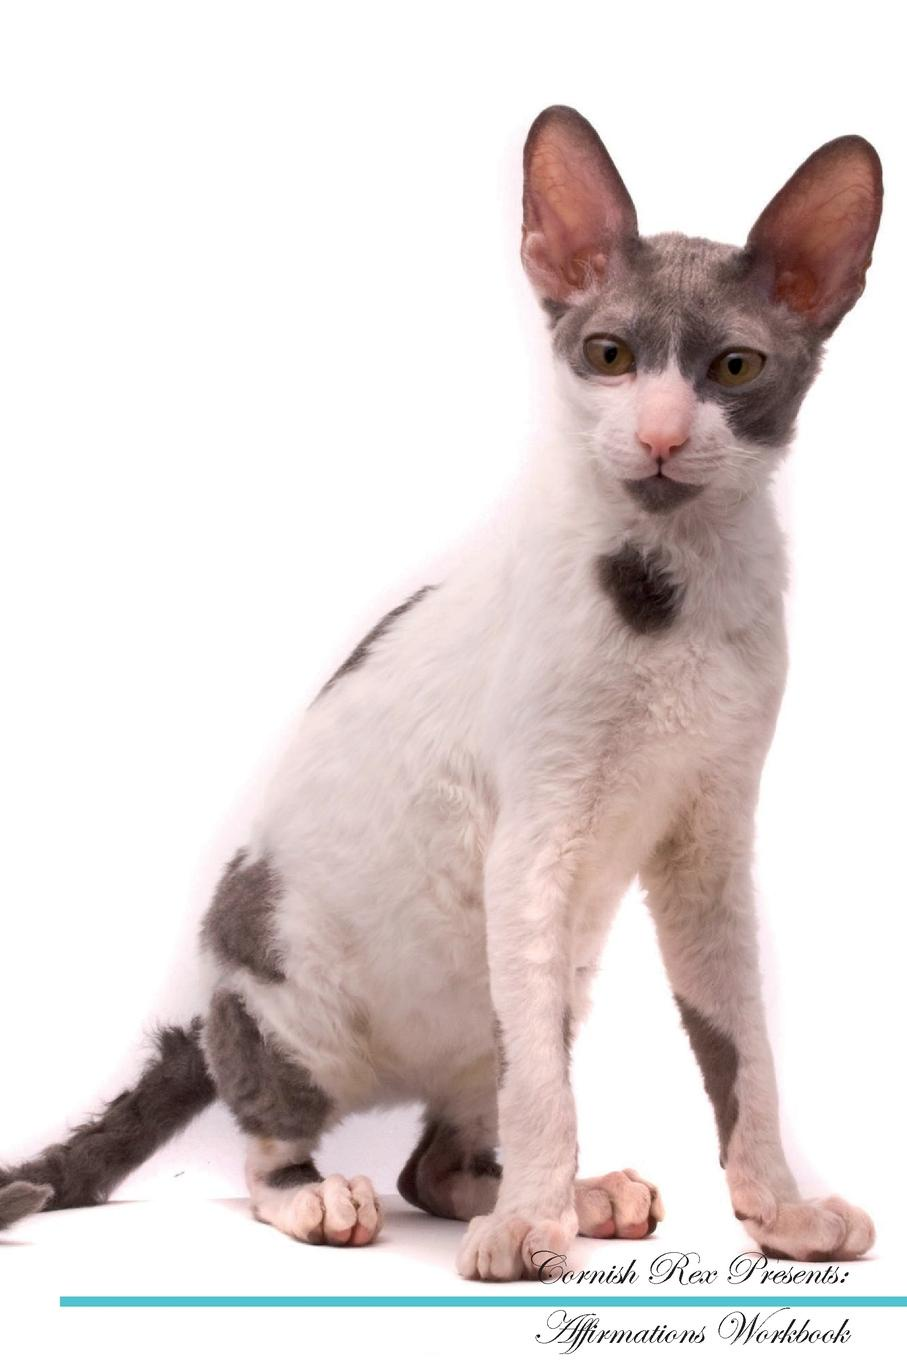 Live Positivity Cornish Rex Affirmations Workbook Presents. Positive and Loving Workbook. Includes: Mentoring Questions, Guidance, Supporting You.